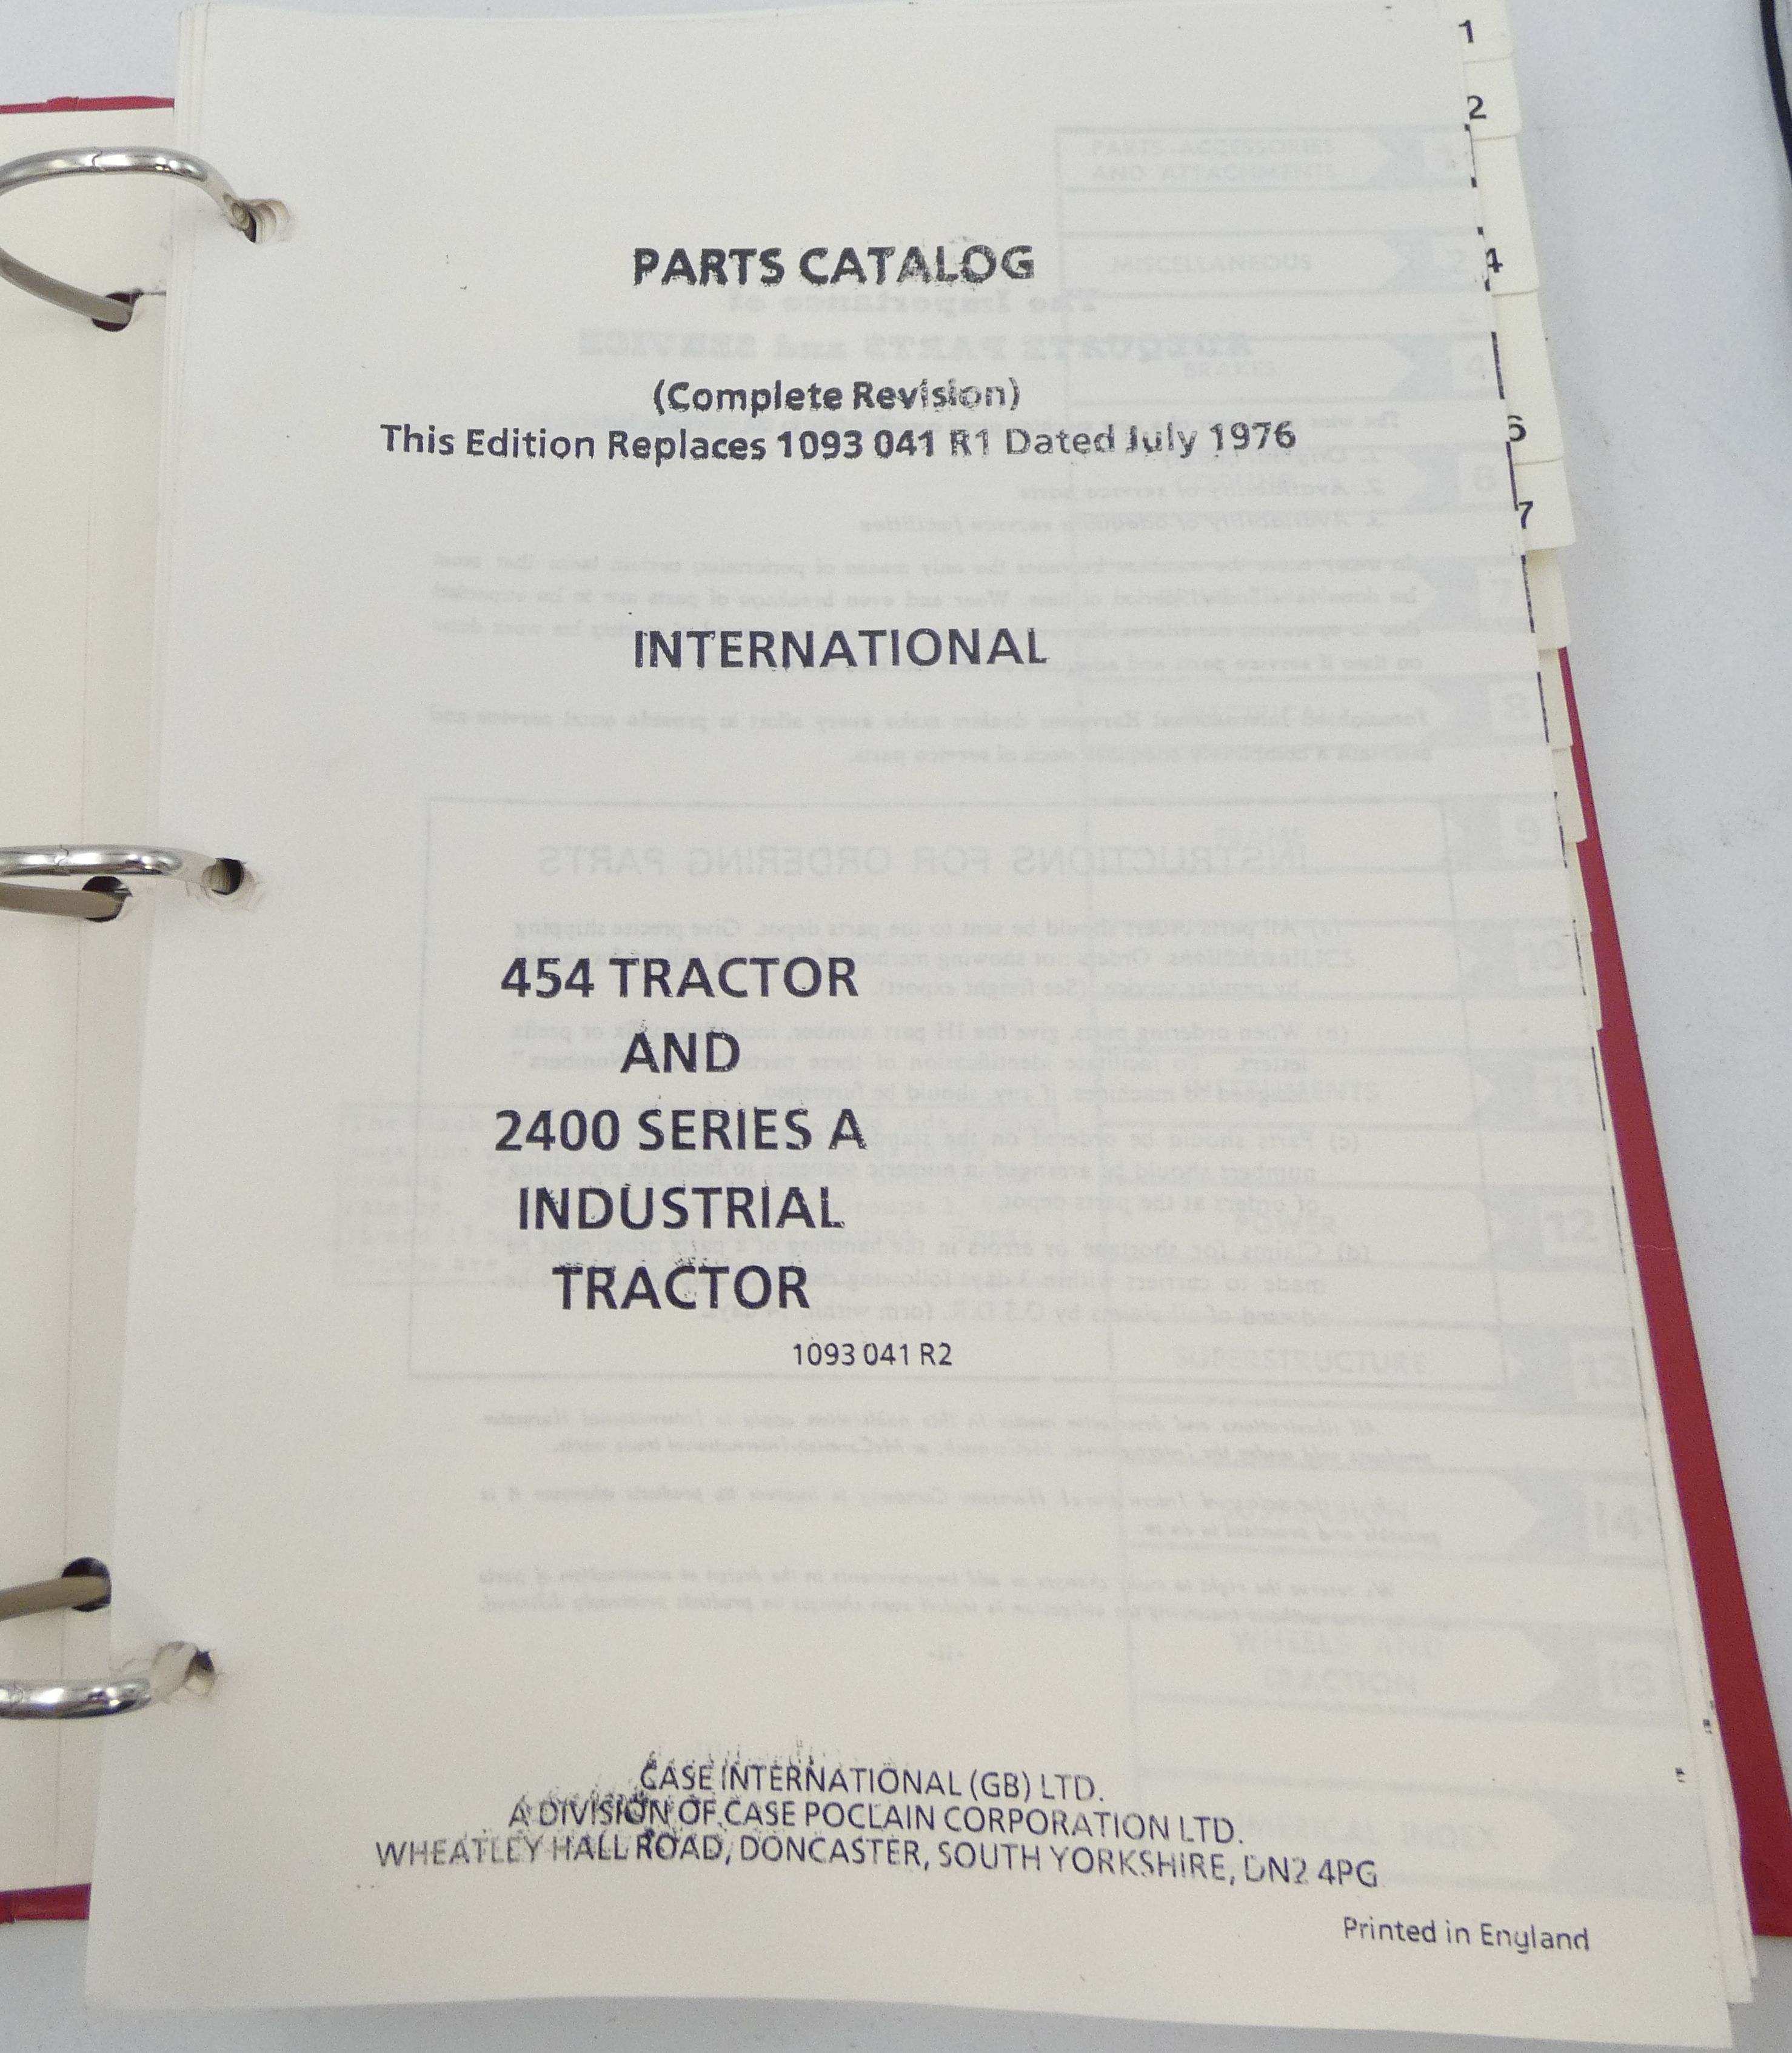 Case 454 and 2400 series A insdustrial tractor parts catalog